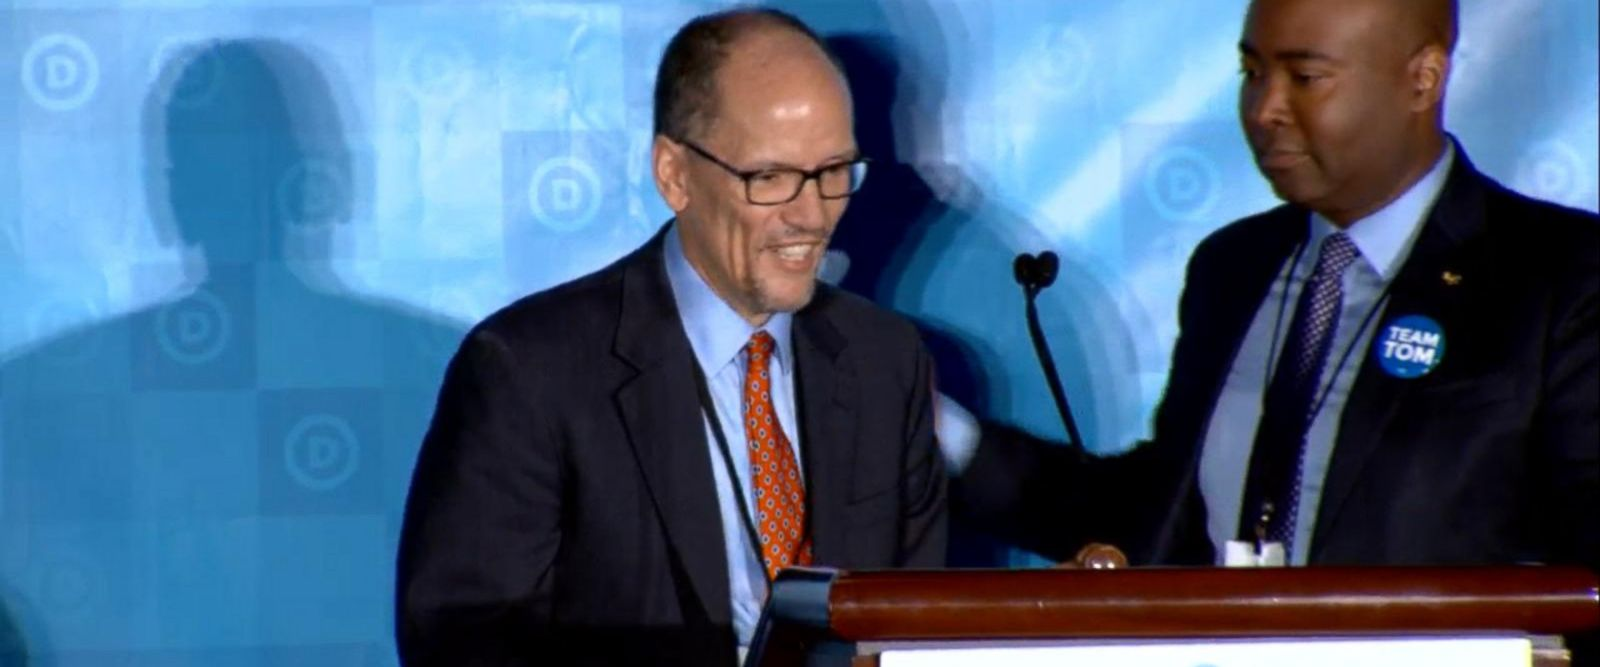 VIDEO: Tom Perez becomes the new national chair of the Democratic Party